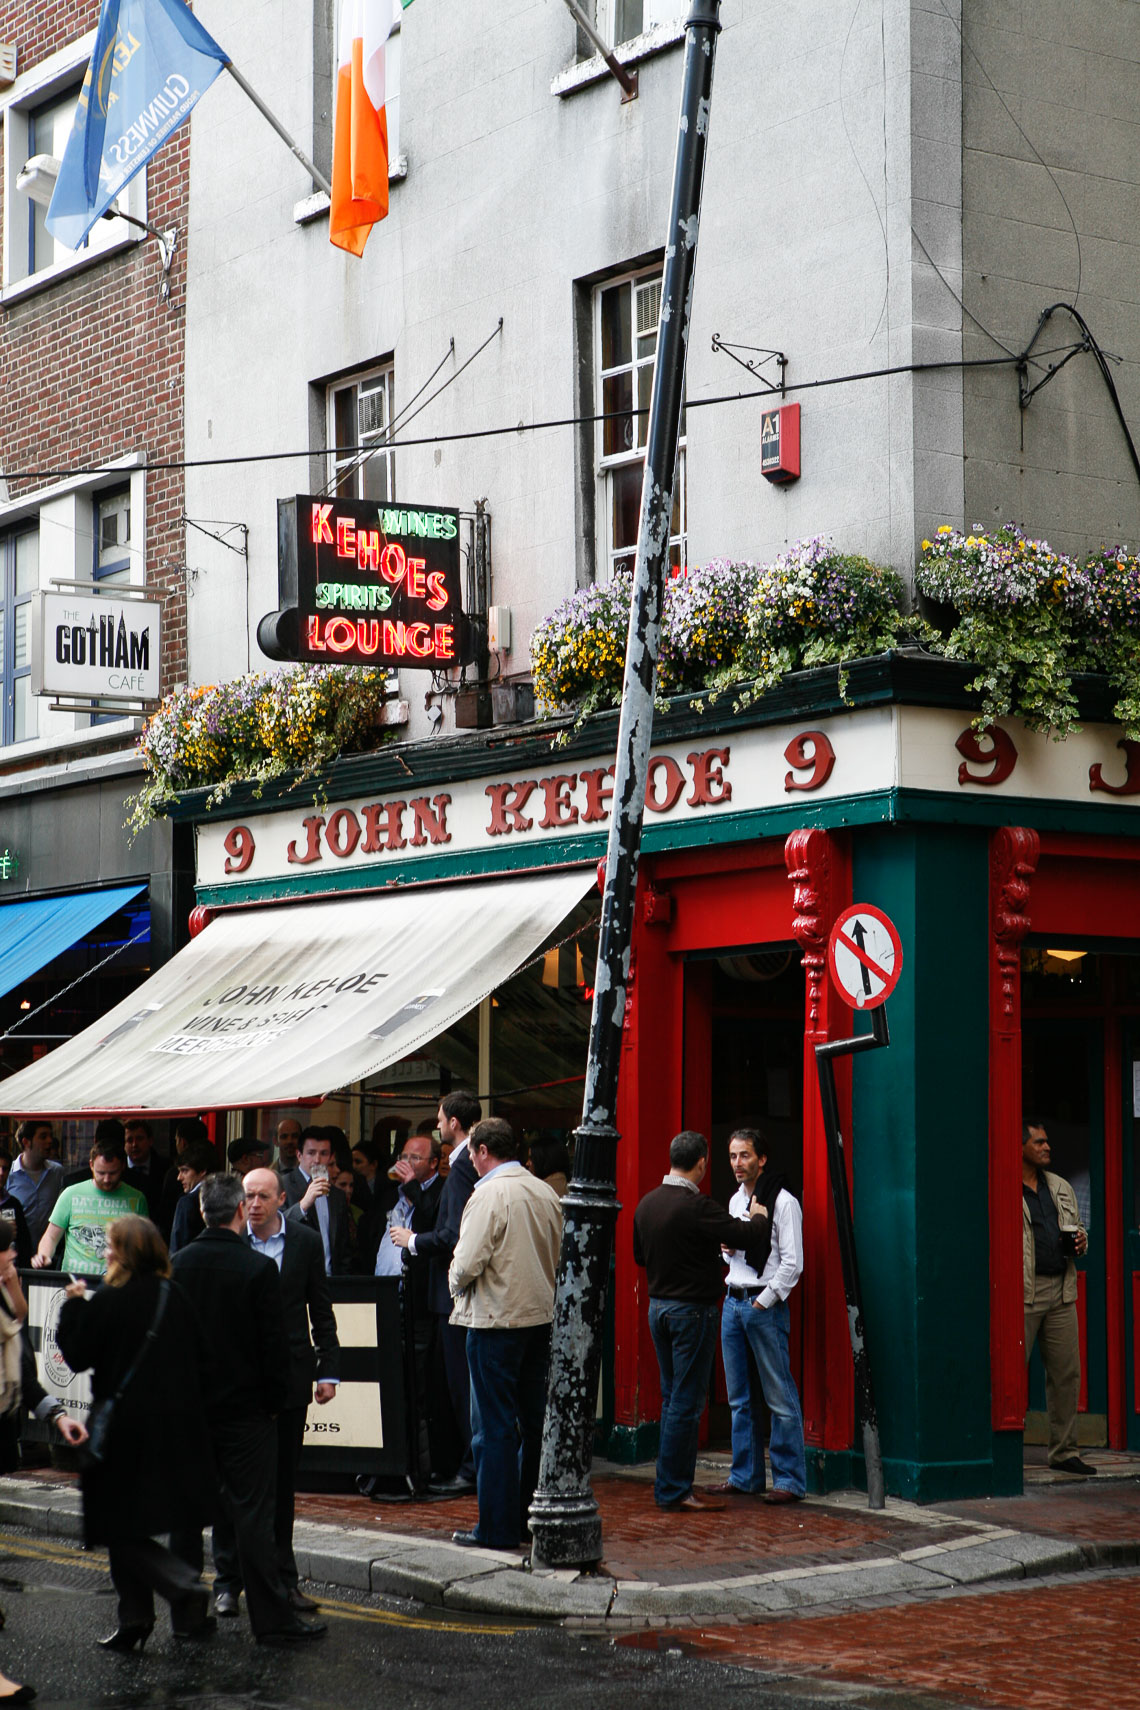 Travel | Dublin | Brian Park Photo New York | 5